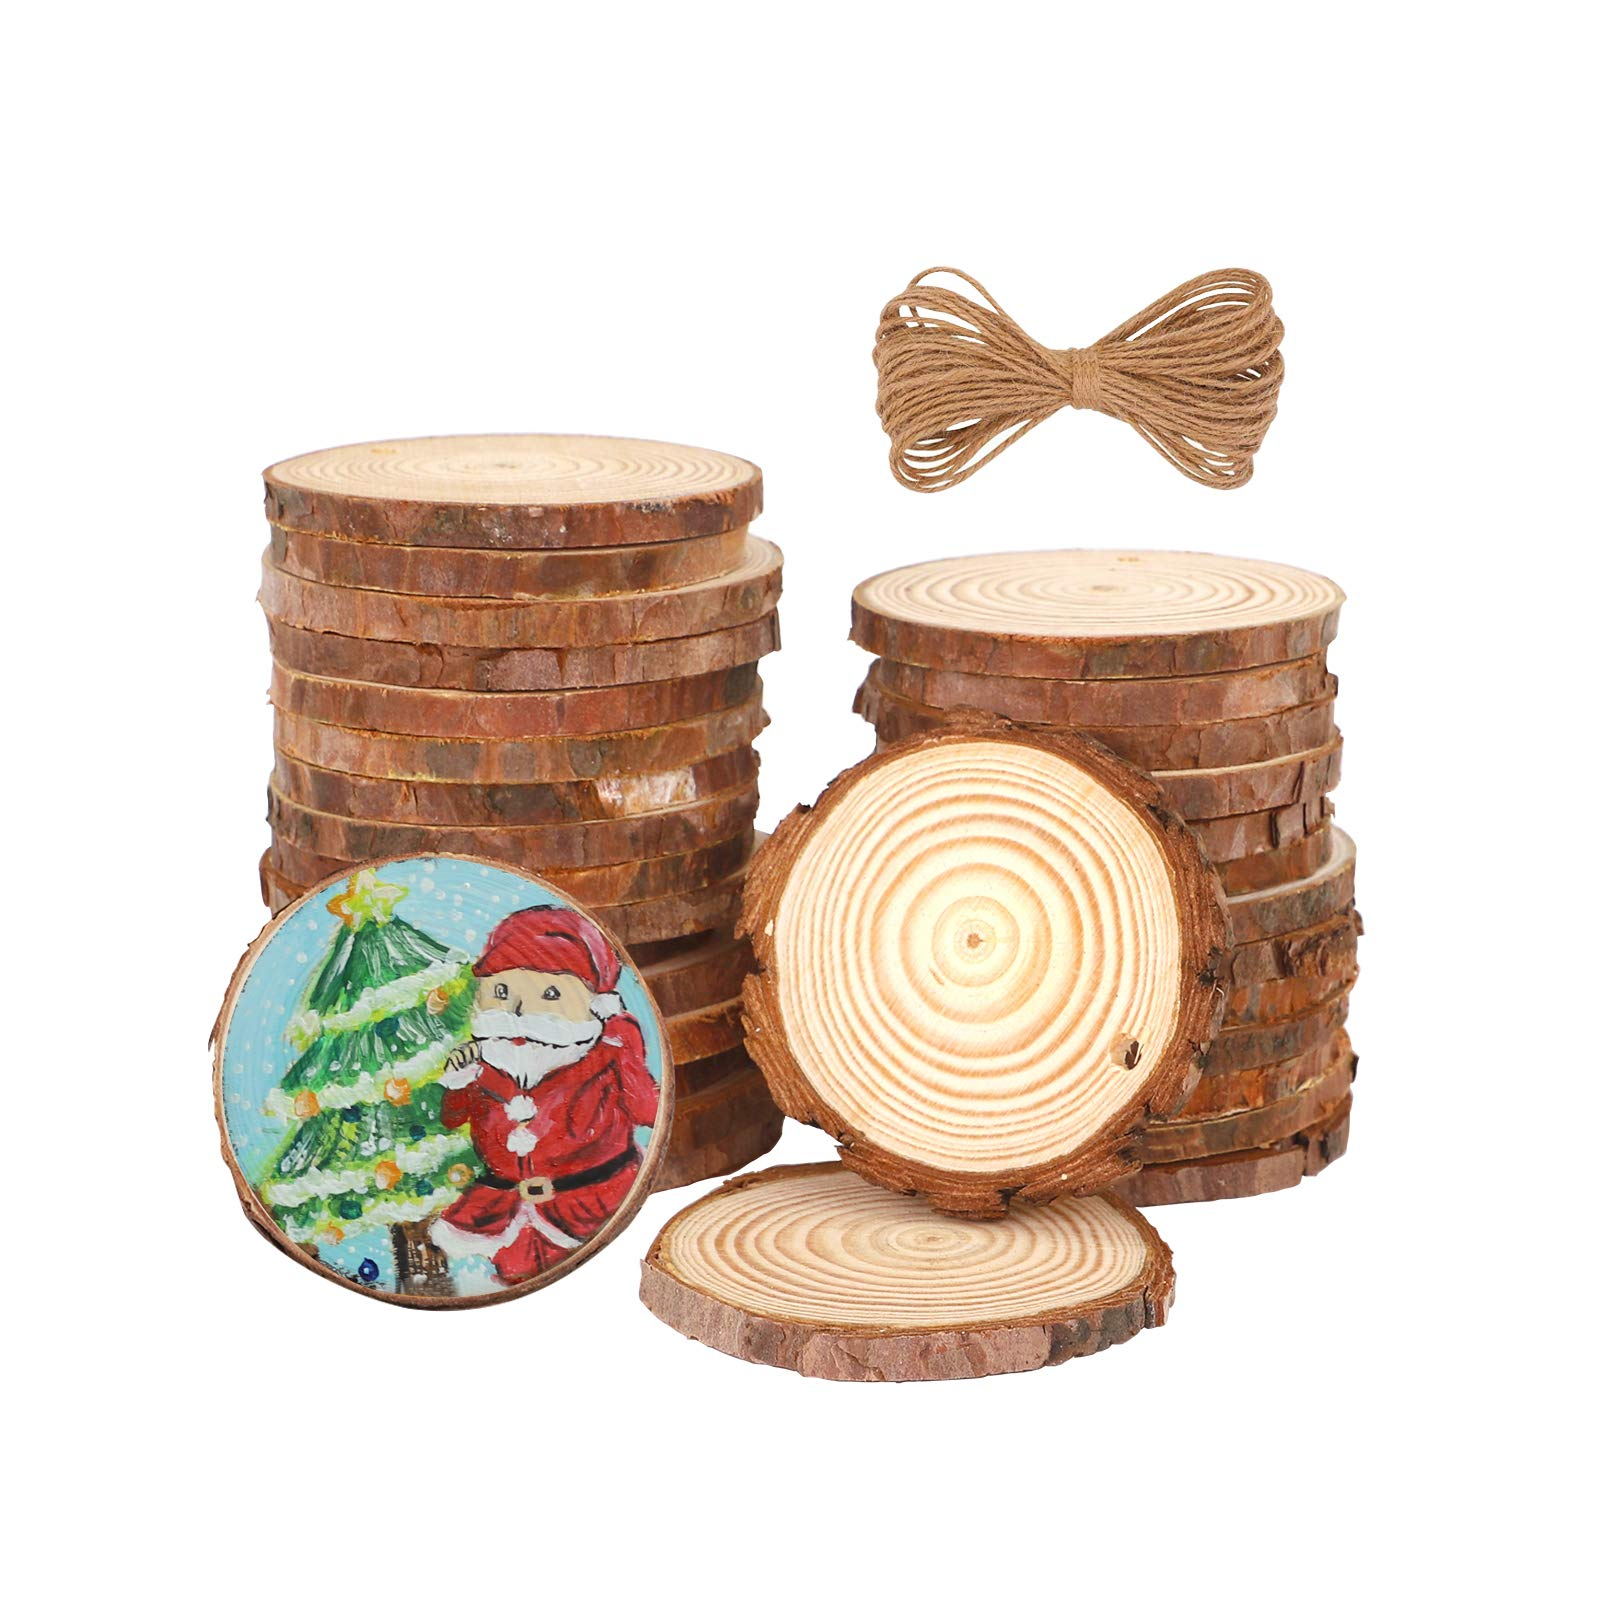 "OPULANE Natural Wood Slices for Ornaments 36 Pcs 2.0-2.4"" Unfinished Wood Rounds Predrilled with Hole Wood Circles Tree Bark for Arts Coasters Christmas DIY Crafts"